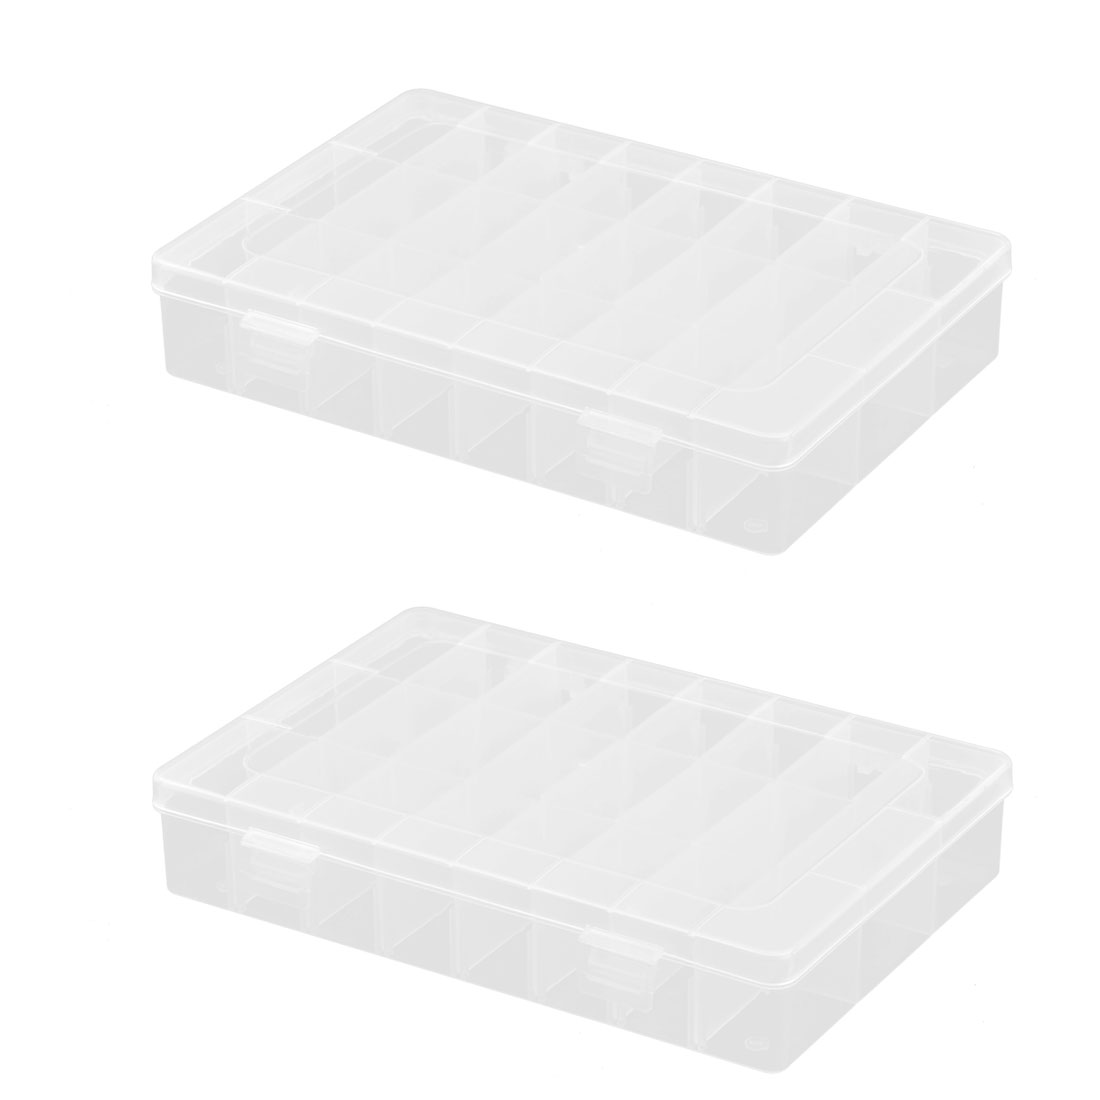 Working Accessory Plastic Jewelry Fish Hook Holder 36 Compartments Box 2 PCS